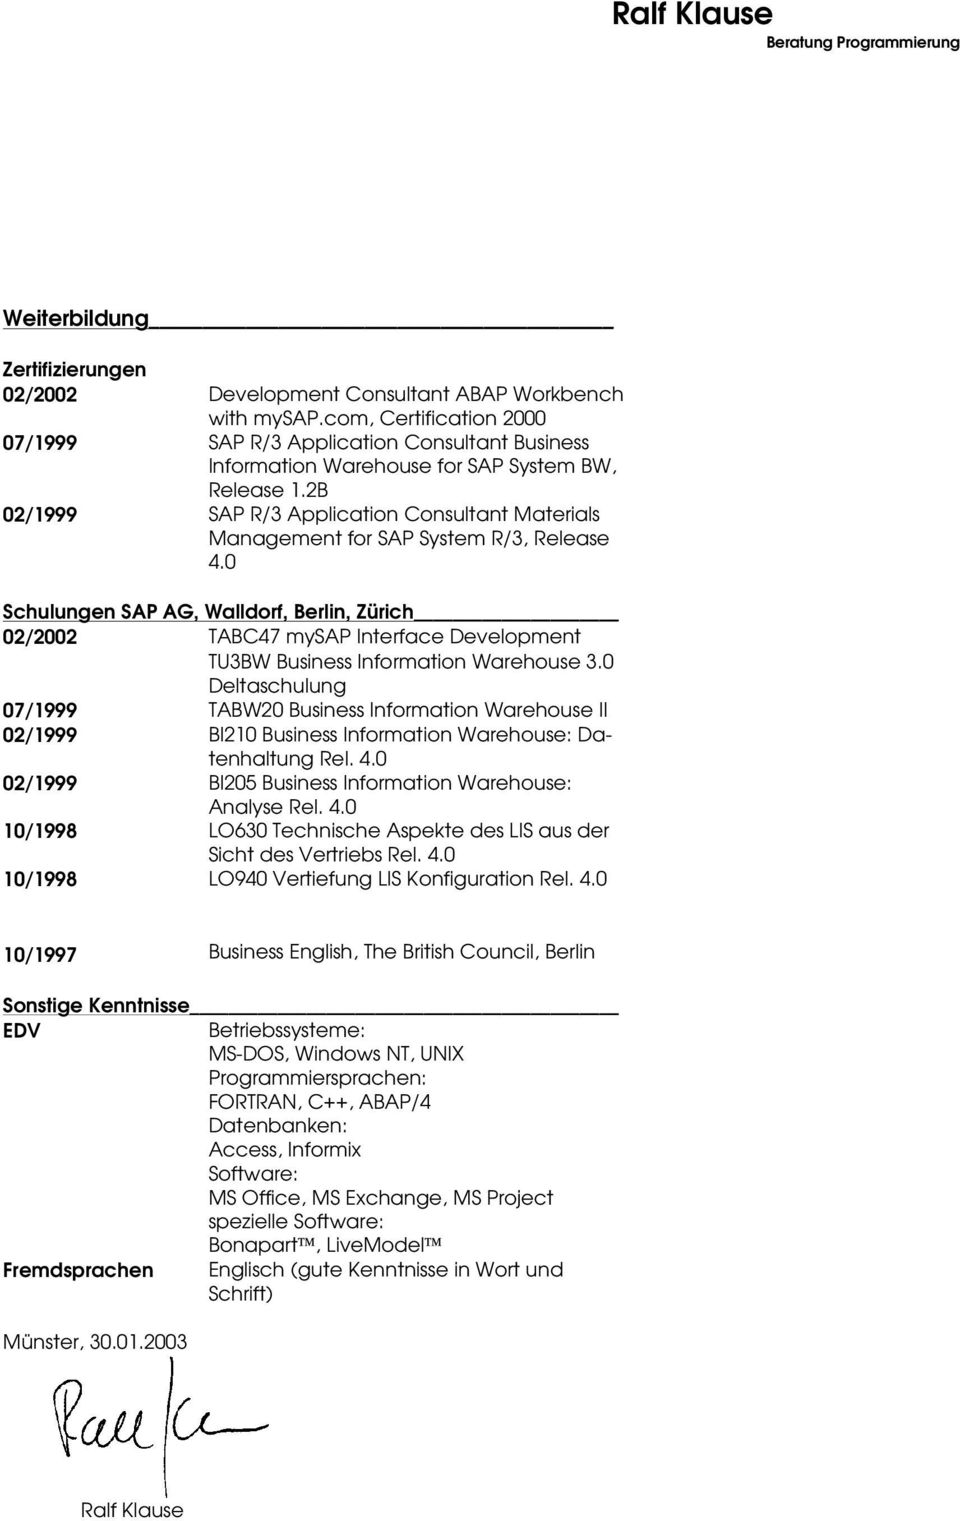 2B 02/1999 SAP R/3 Application Consultant Materials Management for SAP System R/3, Release 4.